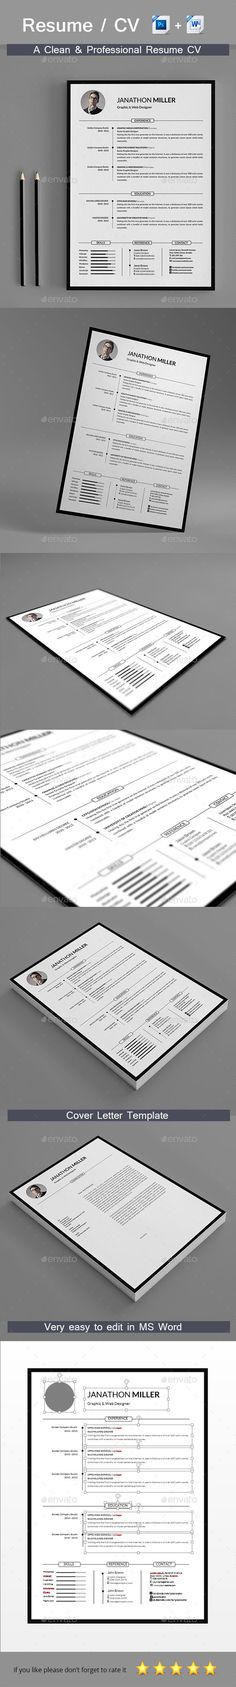 Free Single Page Resume Template PSD Resume \/ Portfolio - psd resume templates